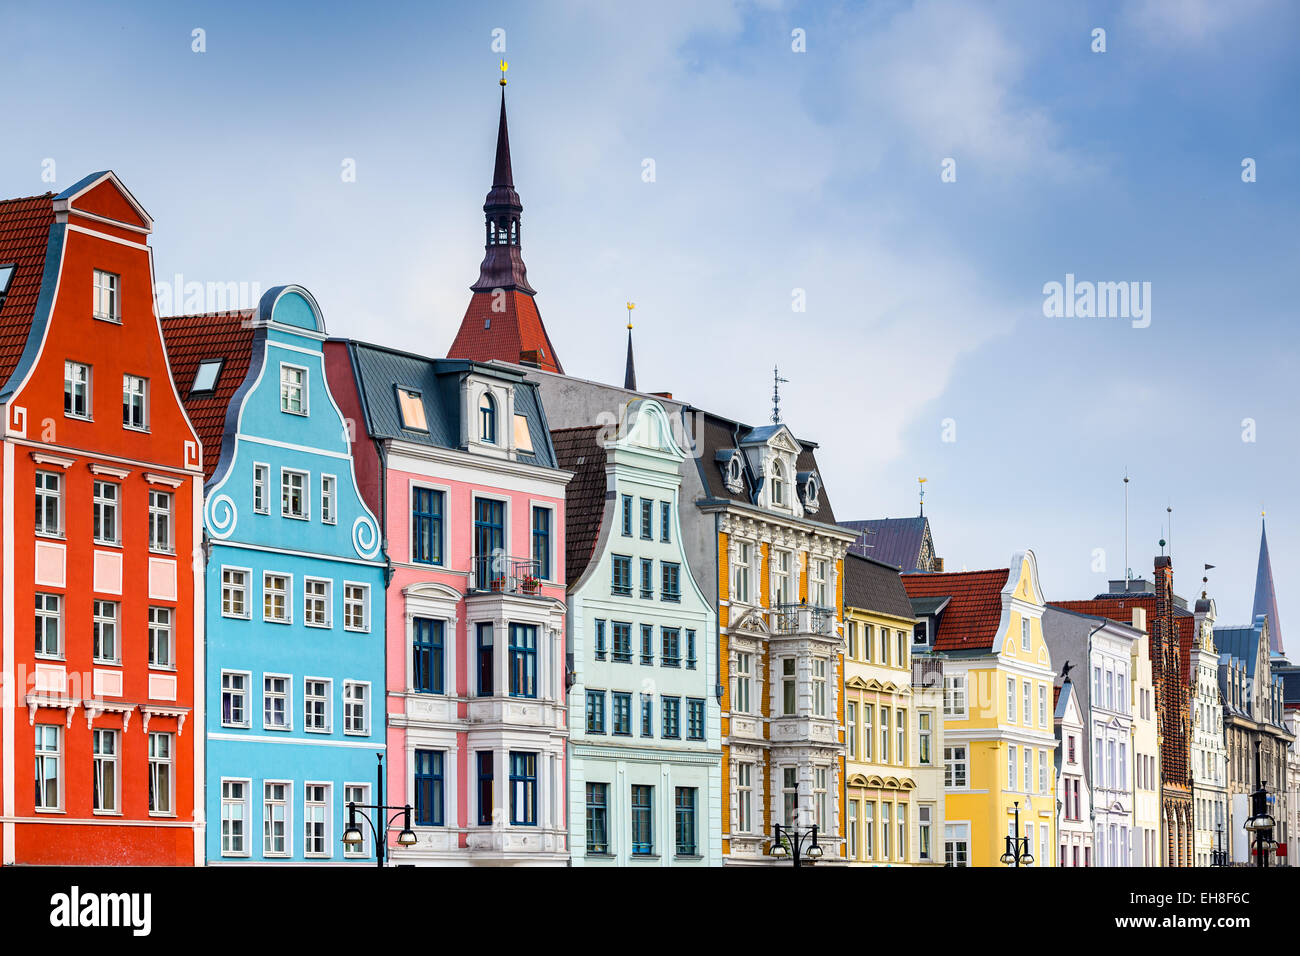 Rostock, Allemagne vieille ville paysage urbain. Photo Stock